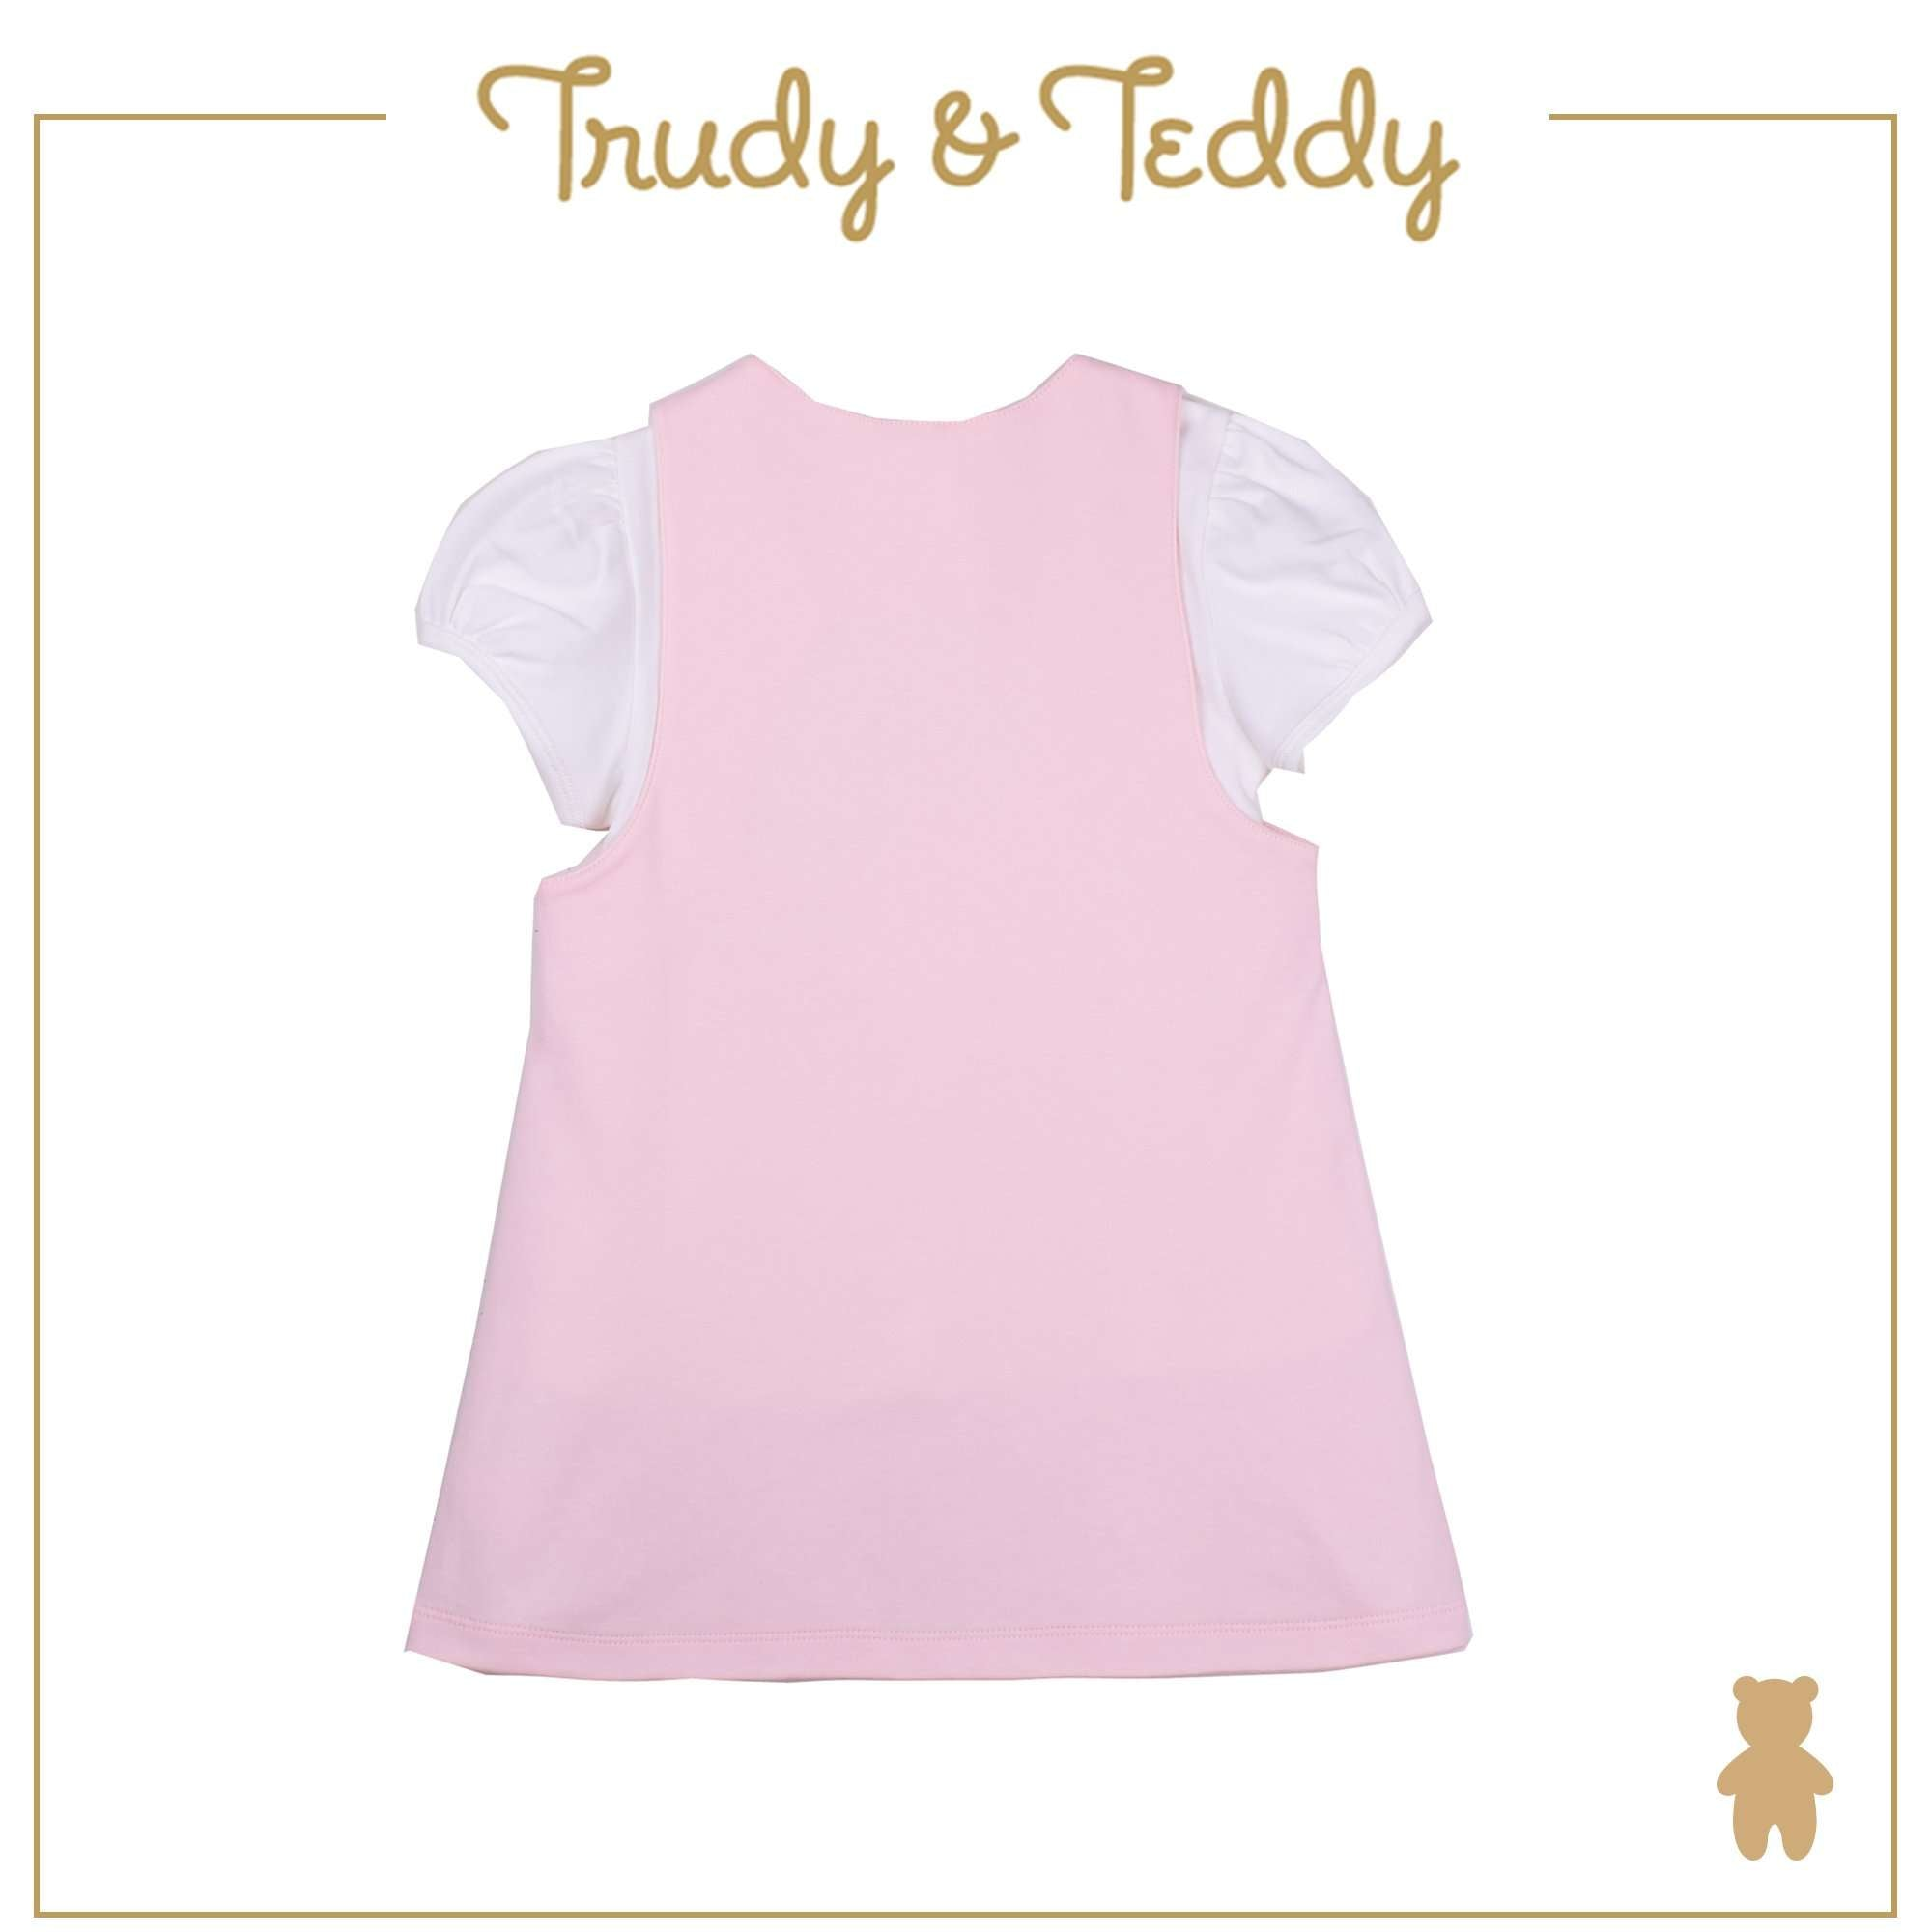 Trudy & Teddy Toddler Girl Pinafore Suit Set - Light Pink T924103-4720-P1 : Buy Trudy & Teddy online at CMG.MY